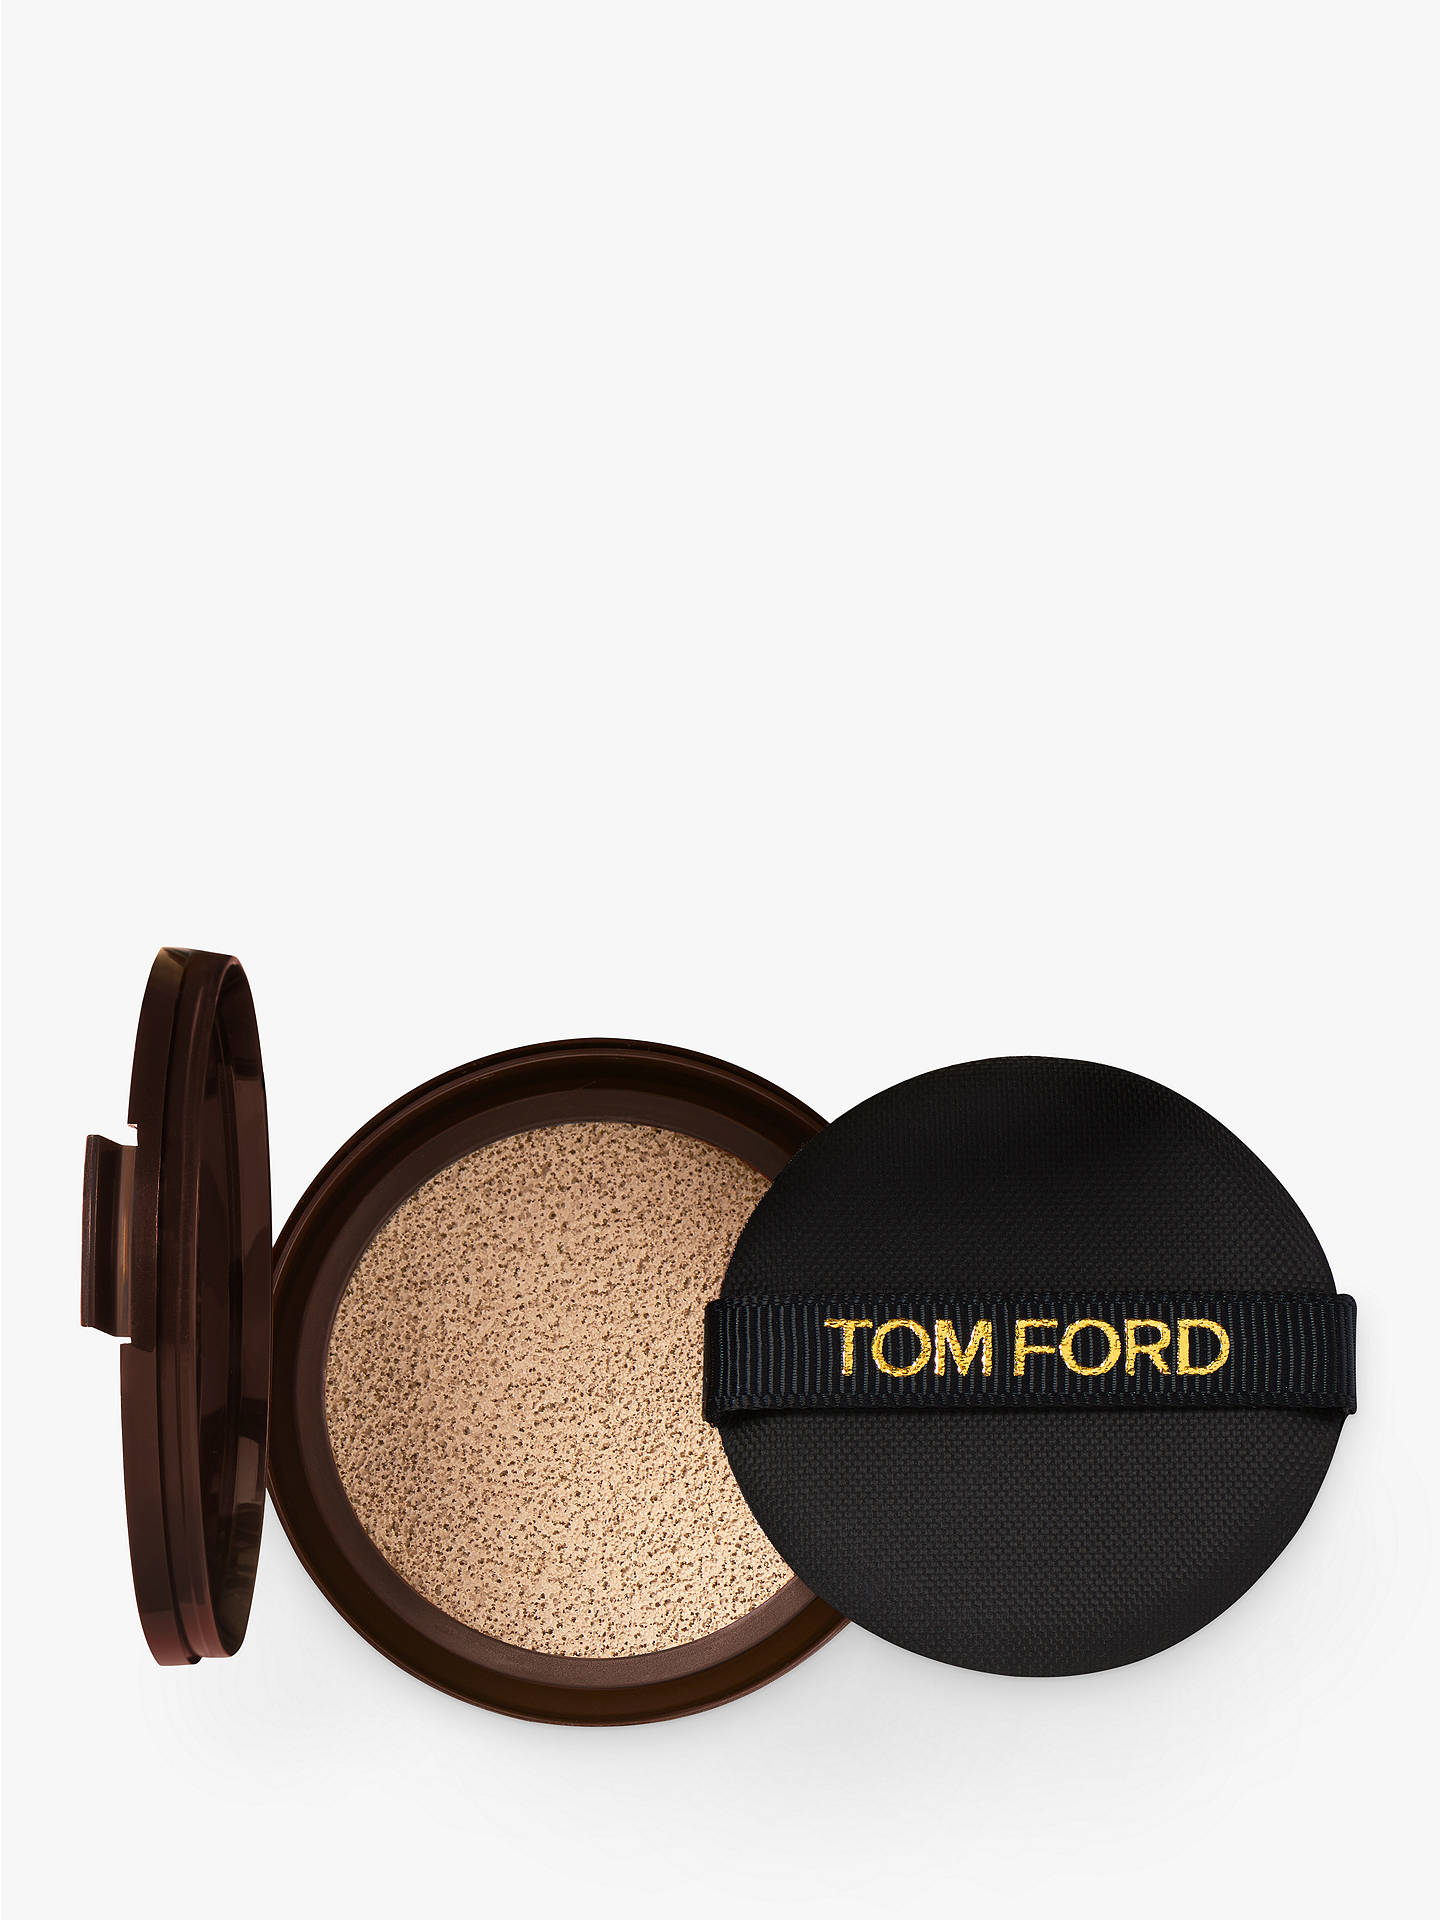 BuyTOM FORD Traceless Touch Foundation Cushion Compact Refill, Cream, 12g Online at johnlewis.